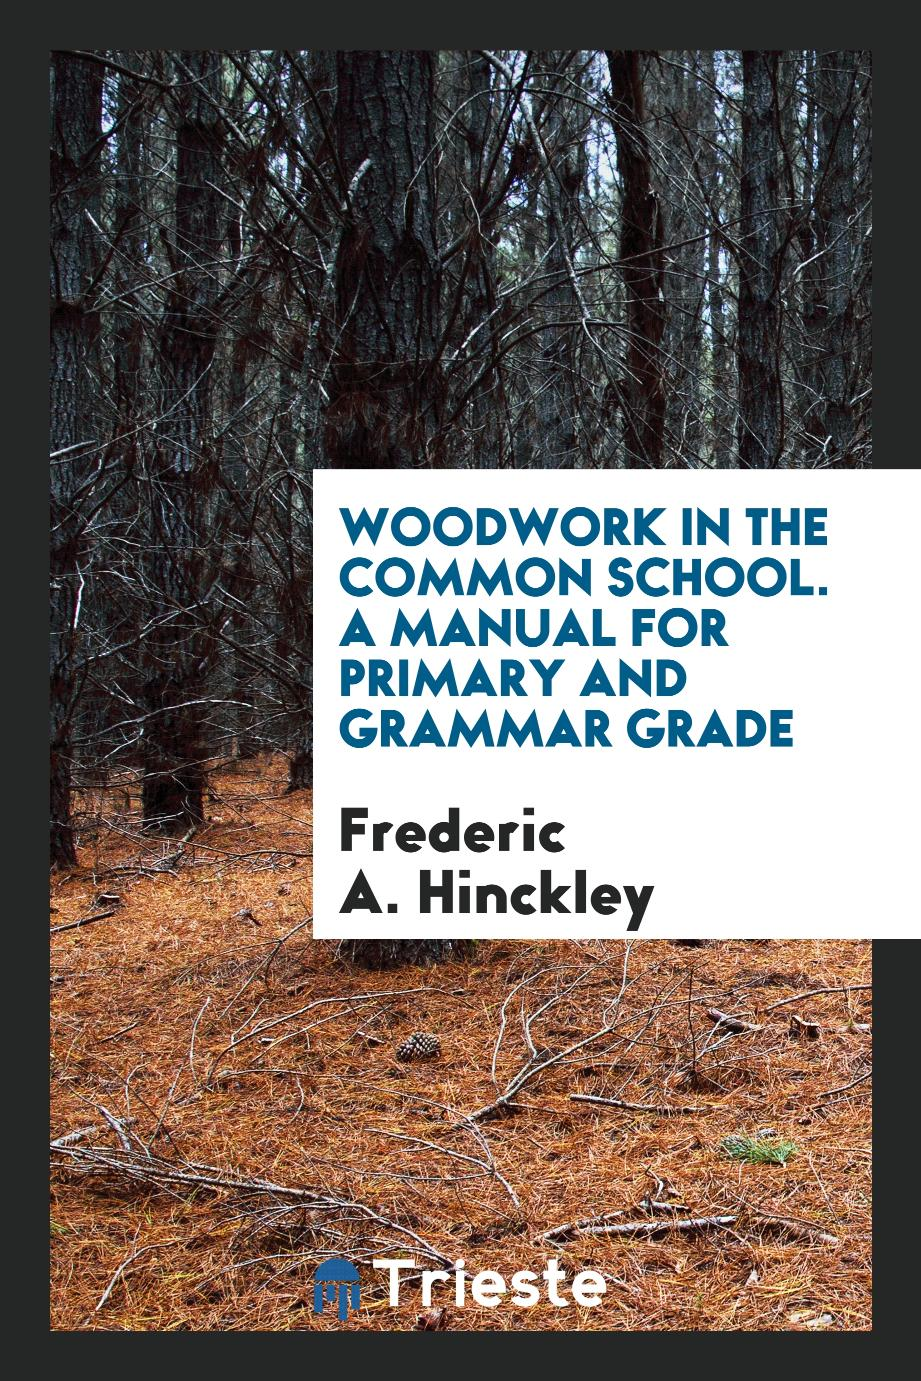 Woodwork in the Common School. A Manual for Primary and Grammar Grade